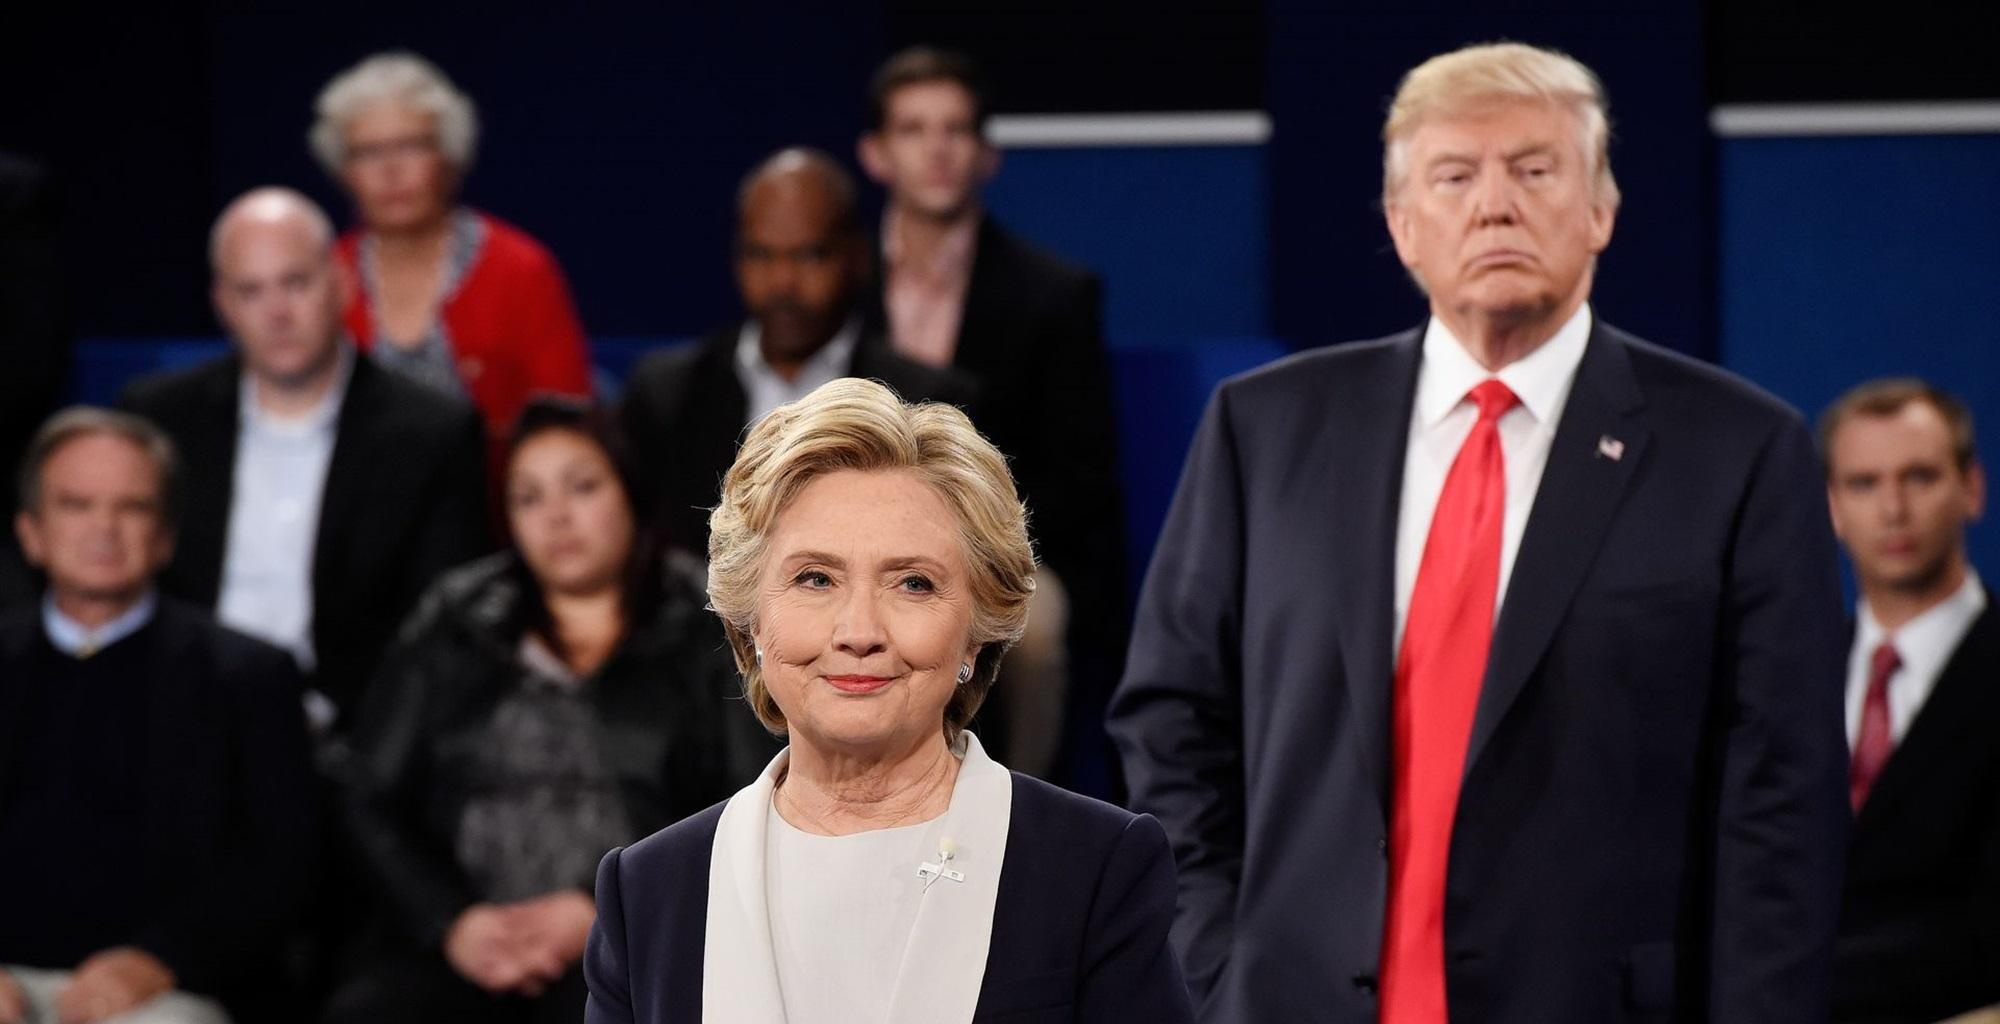 Donald Trump Is Taking His Sweet Revenge On Hillary Clinton By Doing This Over And Over Again